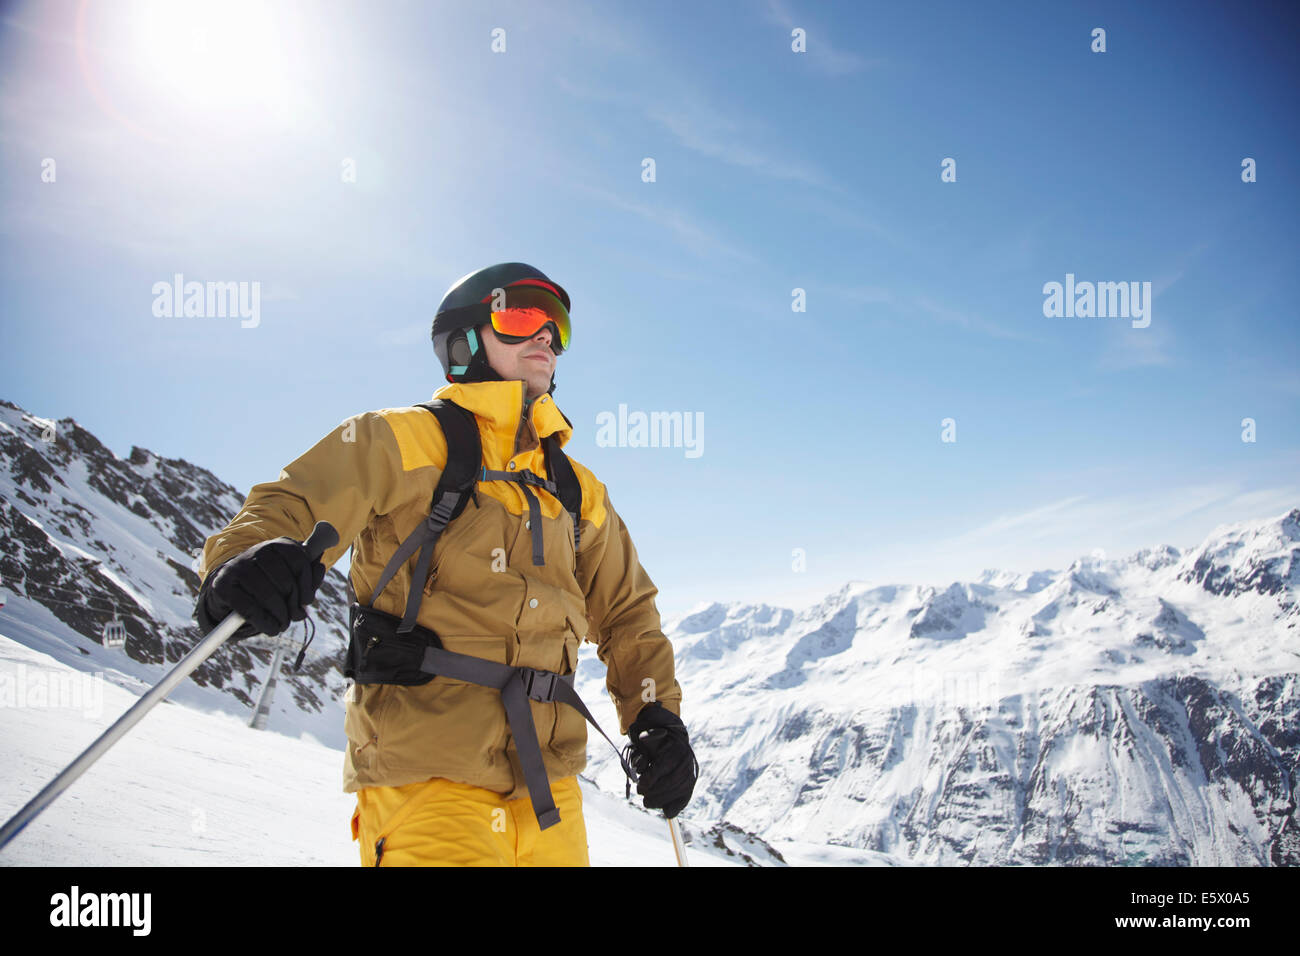 Low angle view of mid adult male skier on mountain, Austria - Stock Image